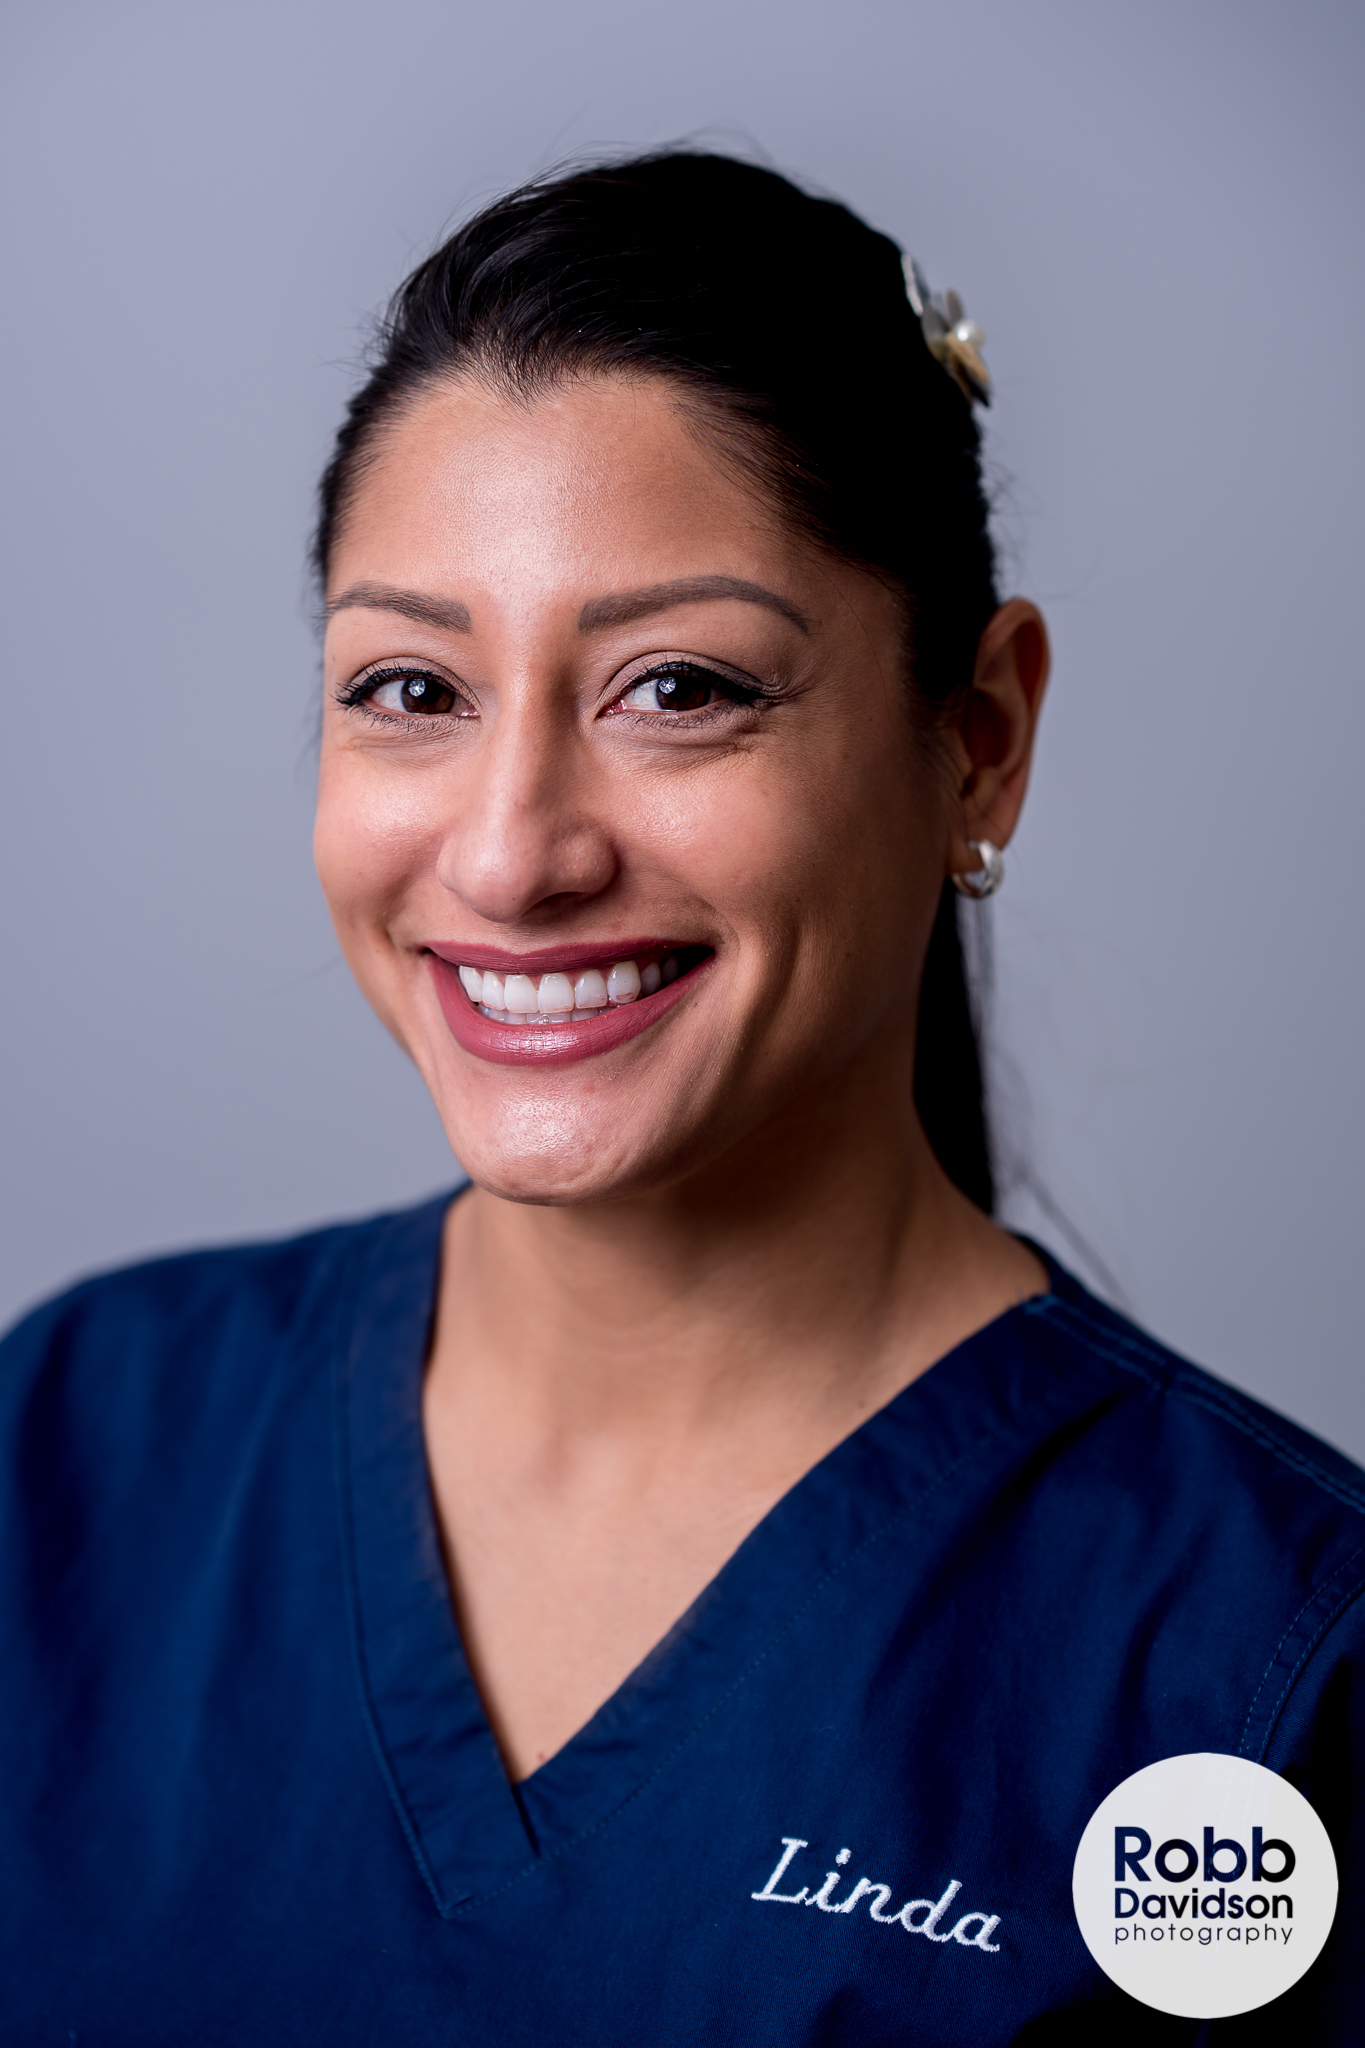 Bolingbrook oral surgeon